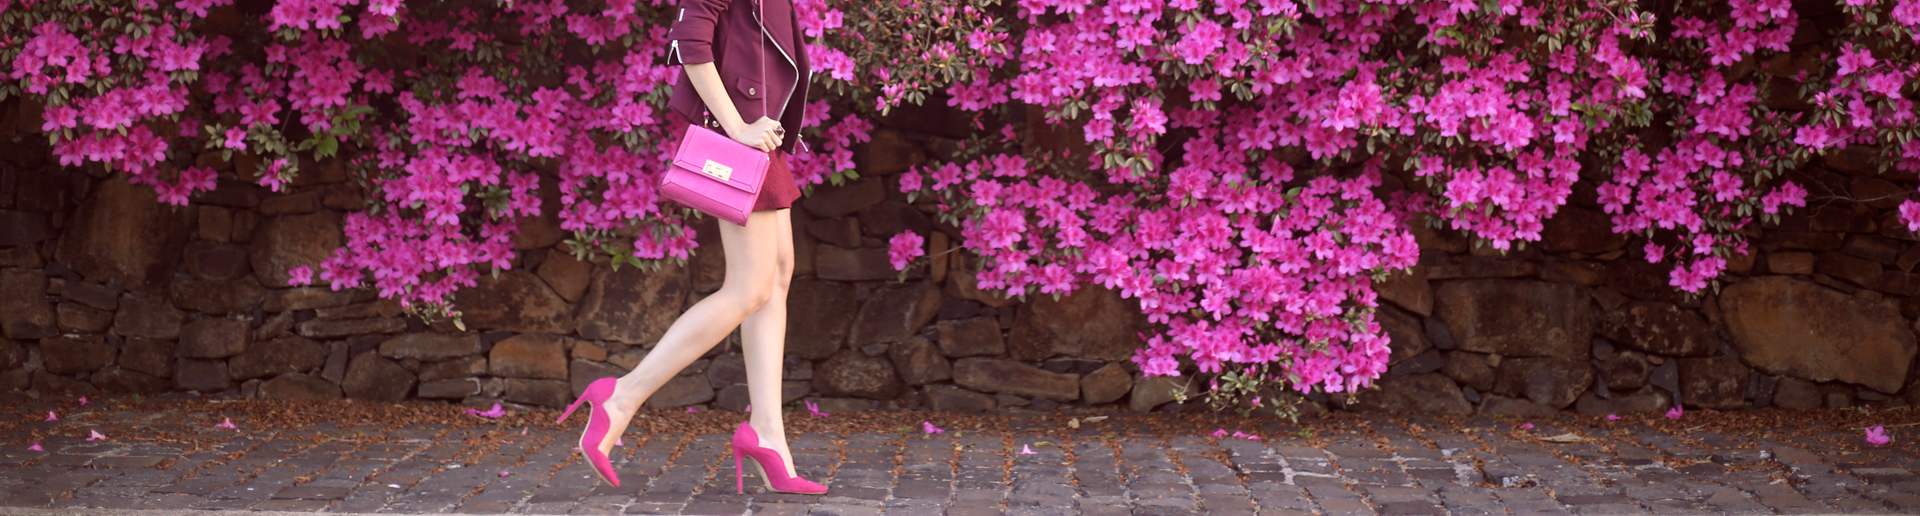 FashionCoolture pink shoes